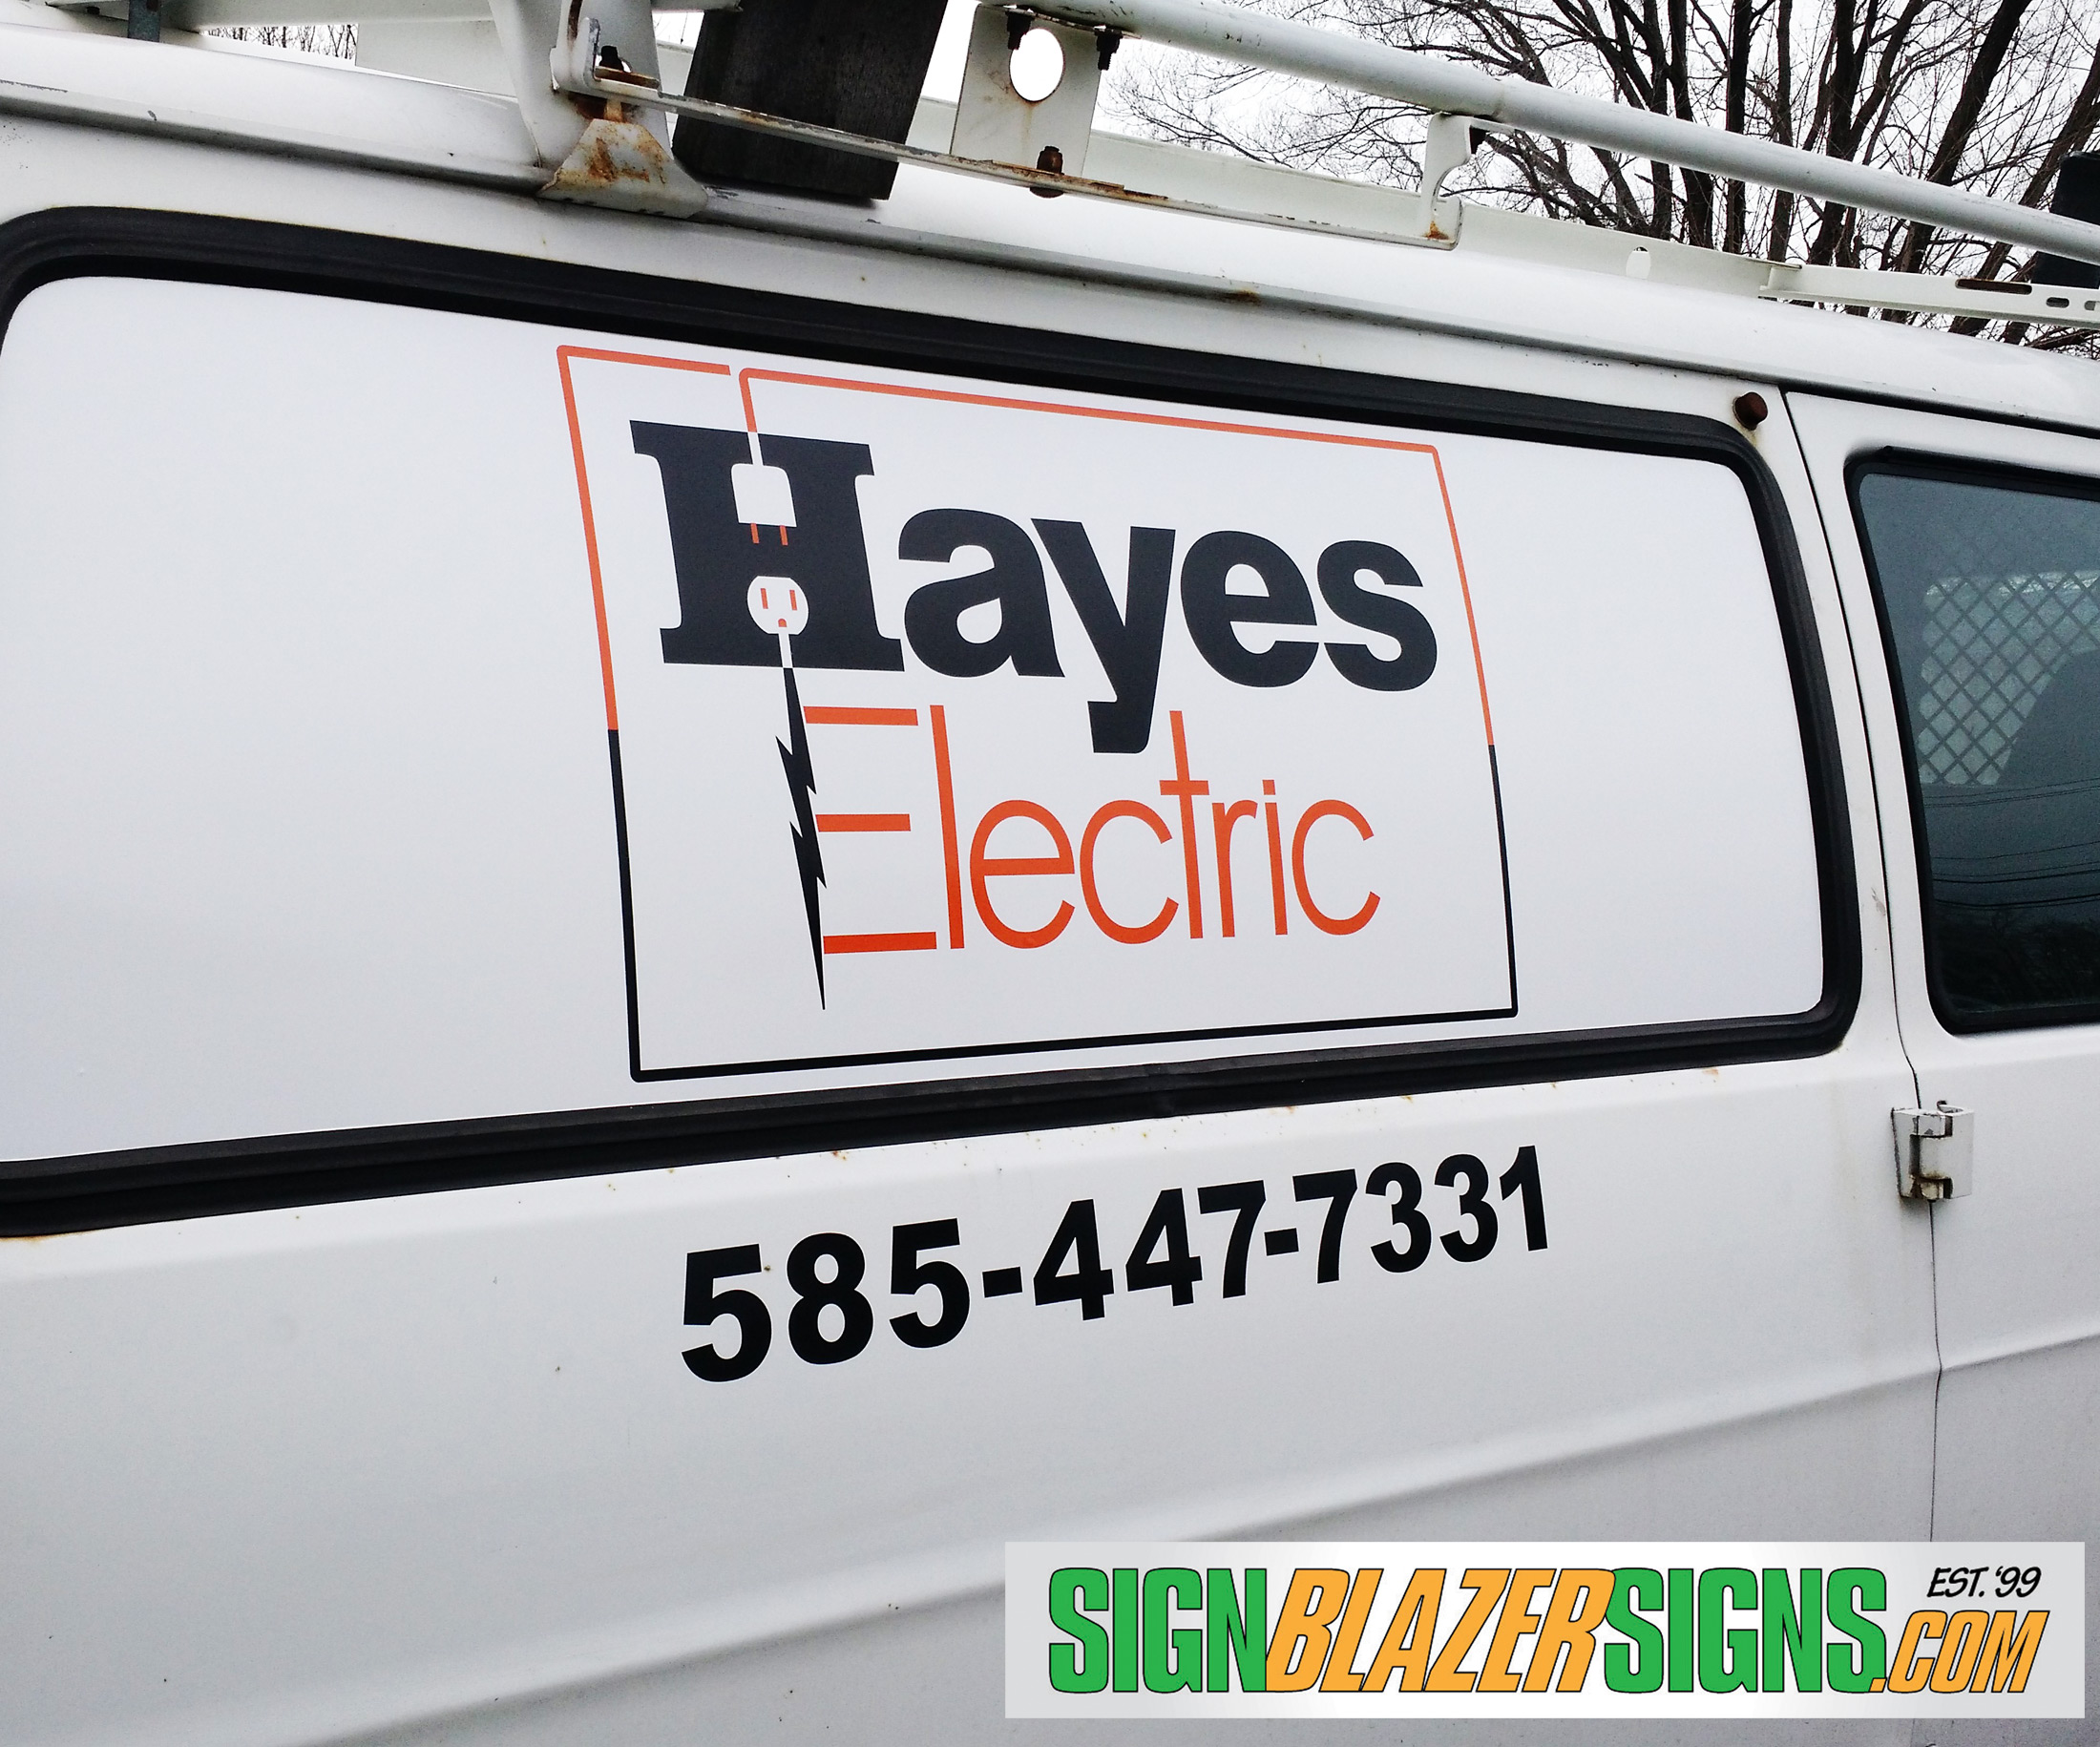 Hayes Electric